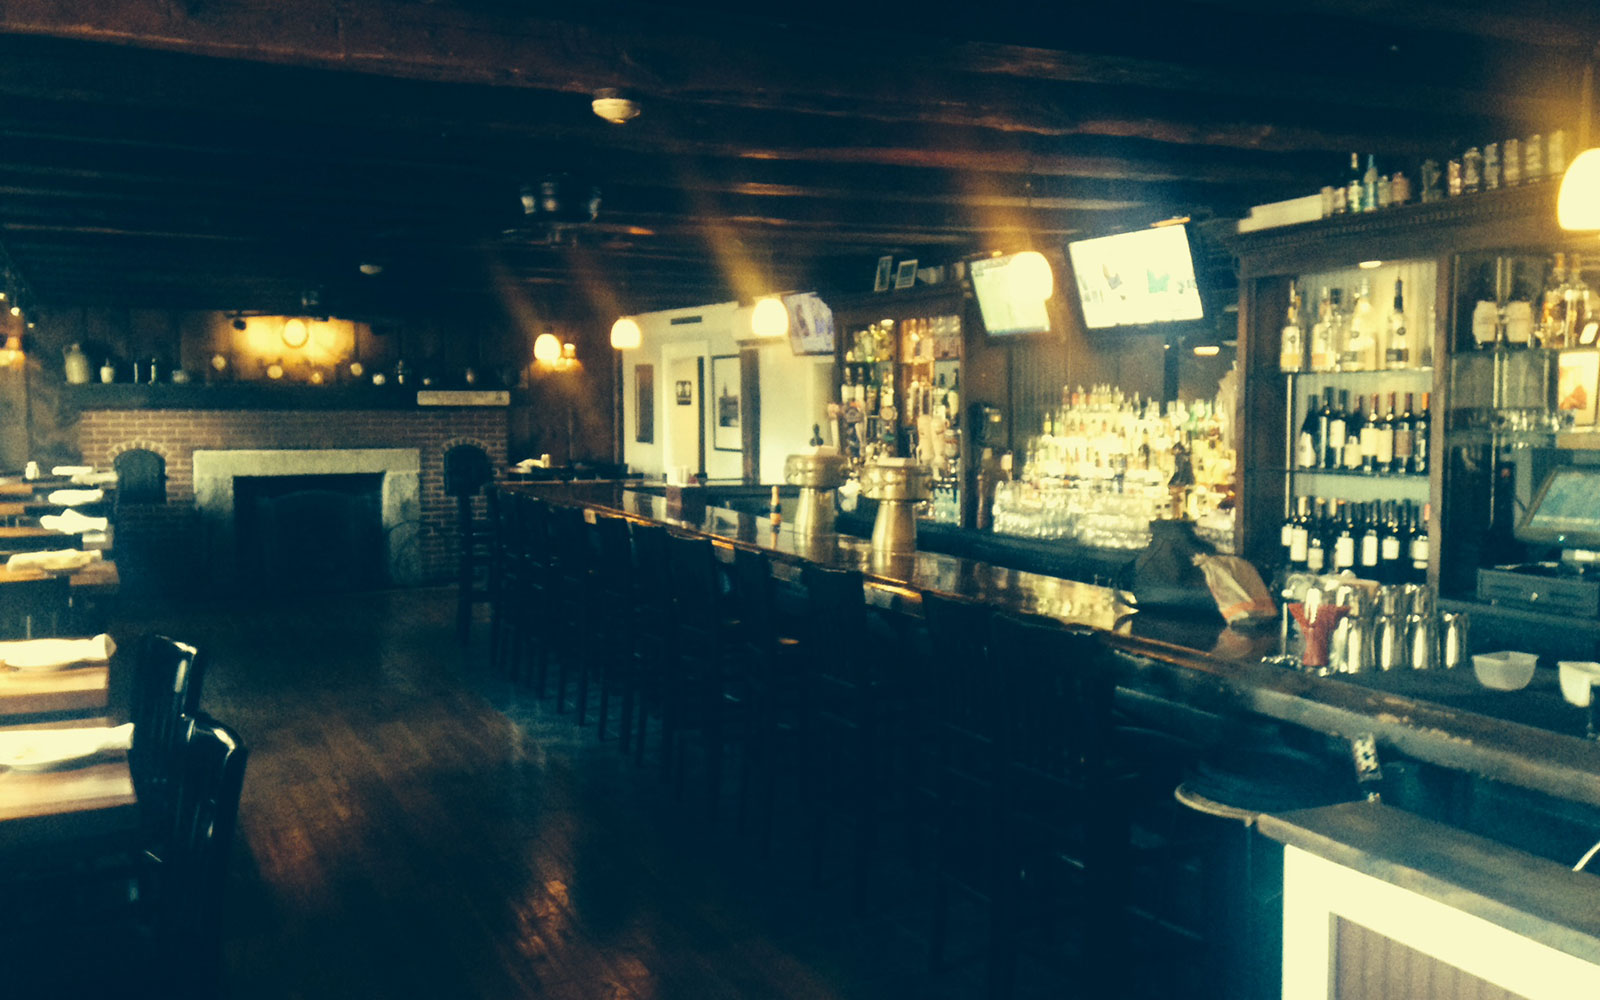 America's Most Haunted Bars and Restaurants: Stone's Public House, Ashland, MA